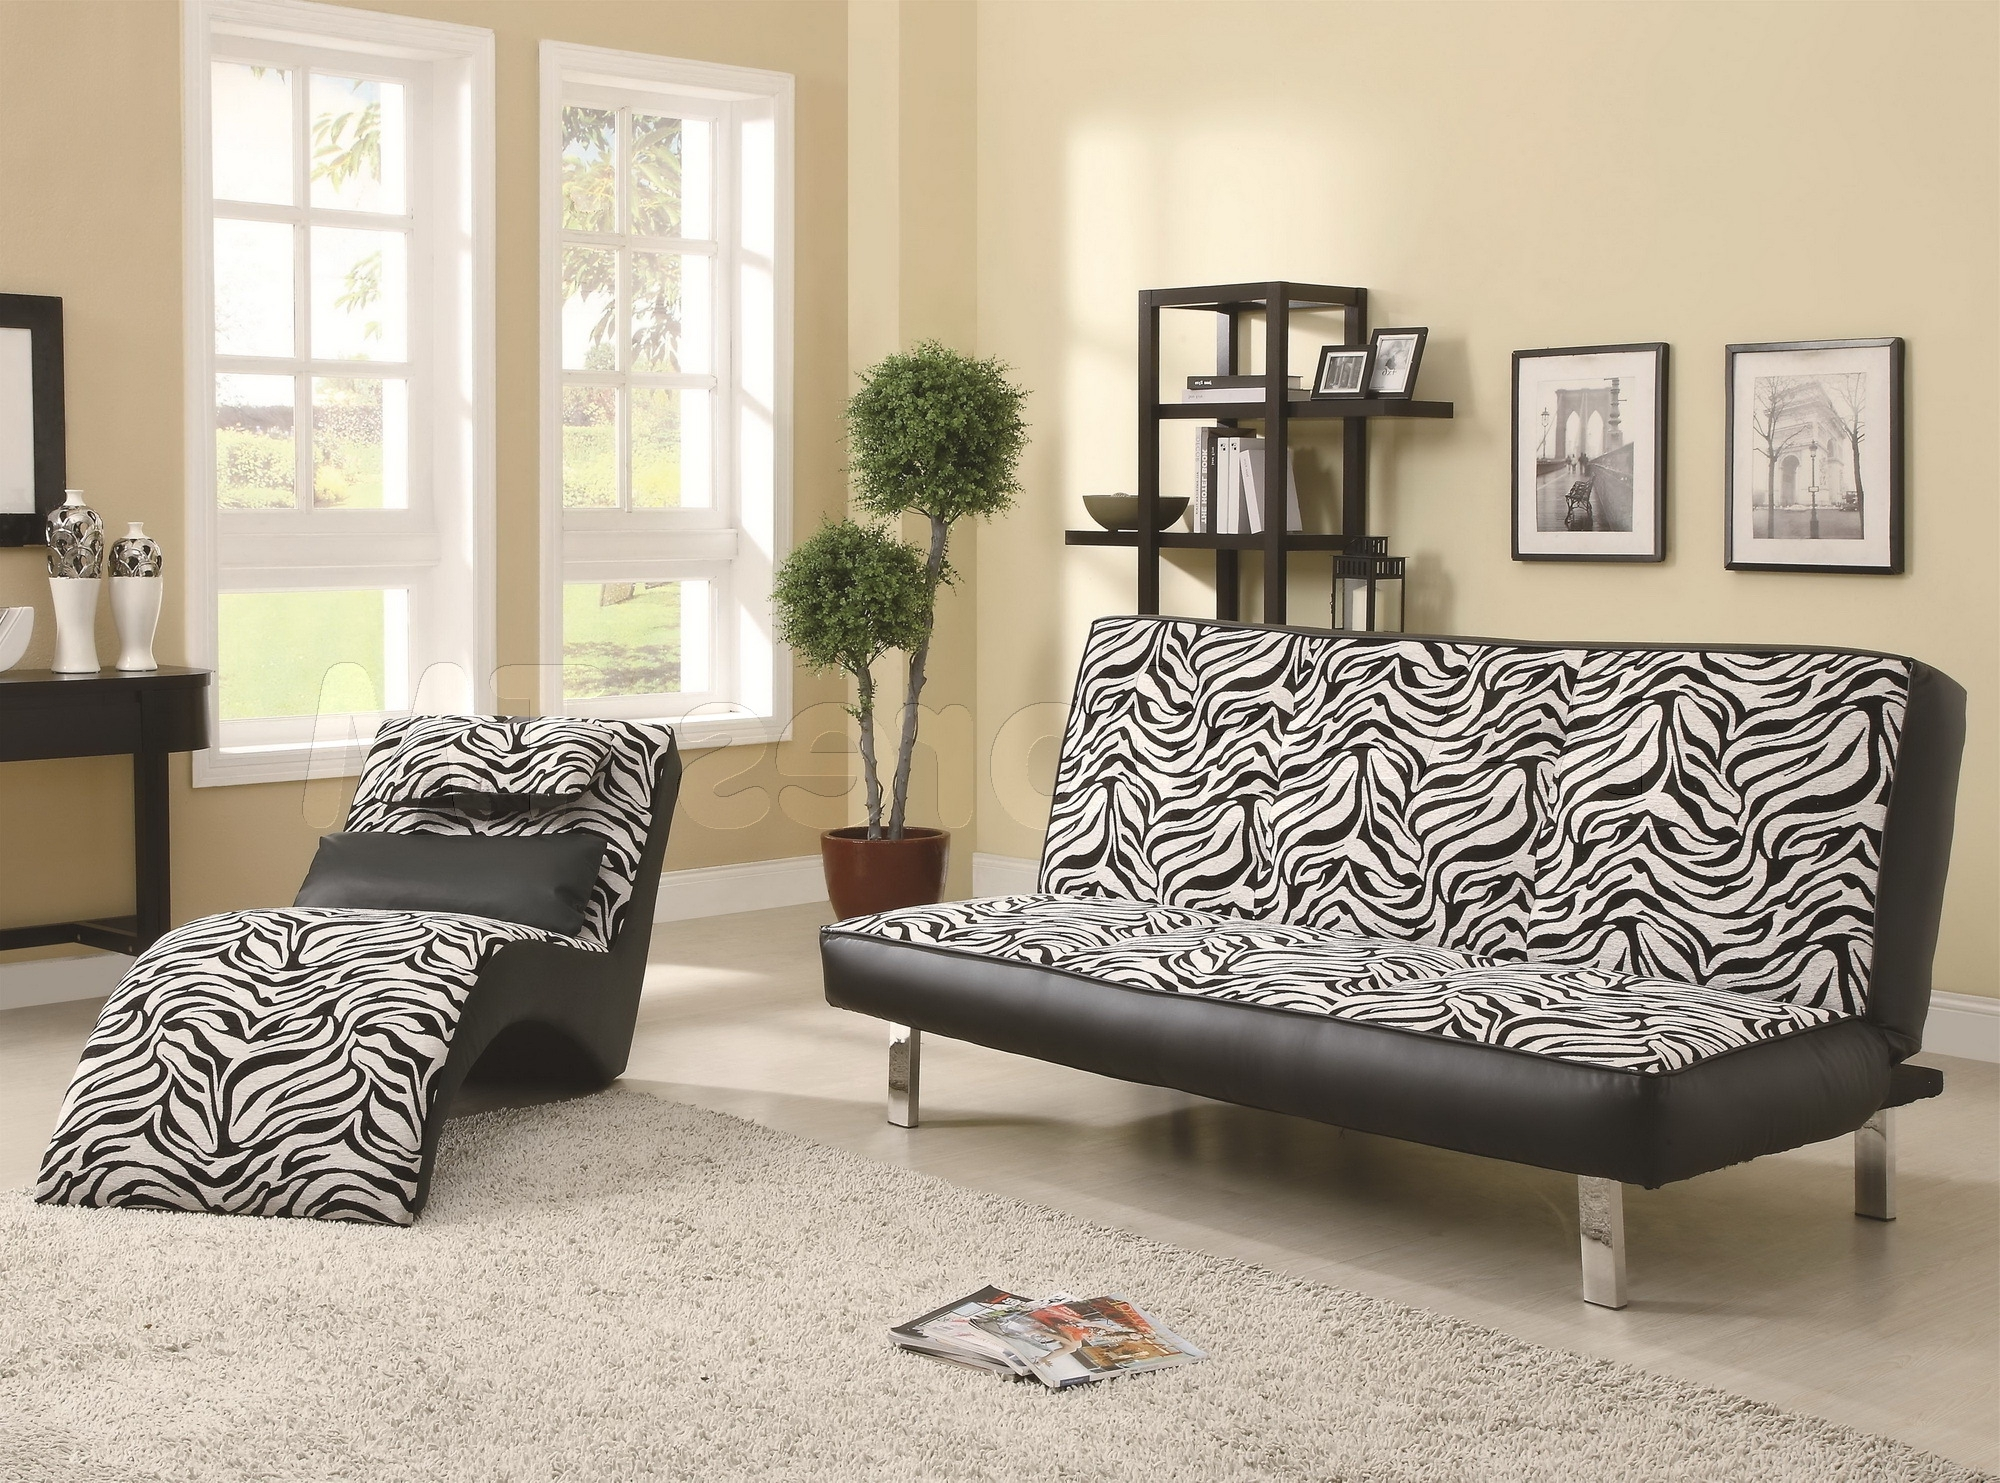 Zebra Print Chaise Lounge Chairs Inside 2018 Black White Zebra Leather Chaise Lounge Chair On Mocha Fur Rug (Gallery 11 of 15)